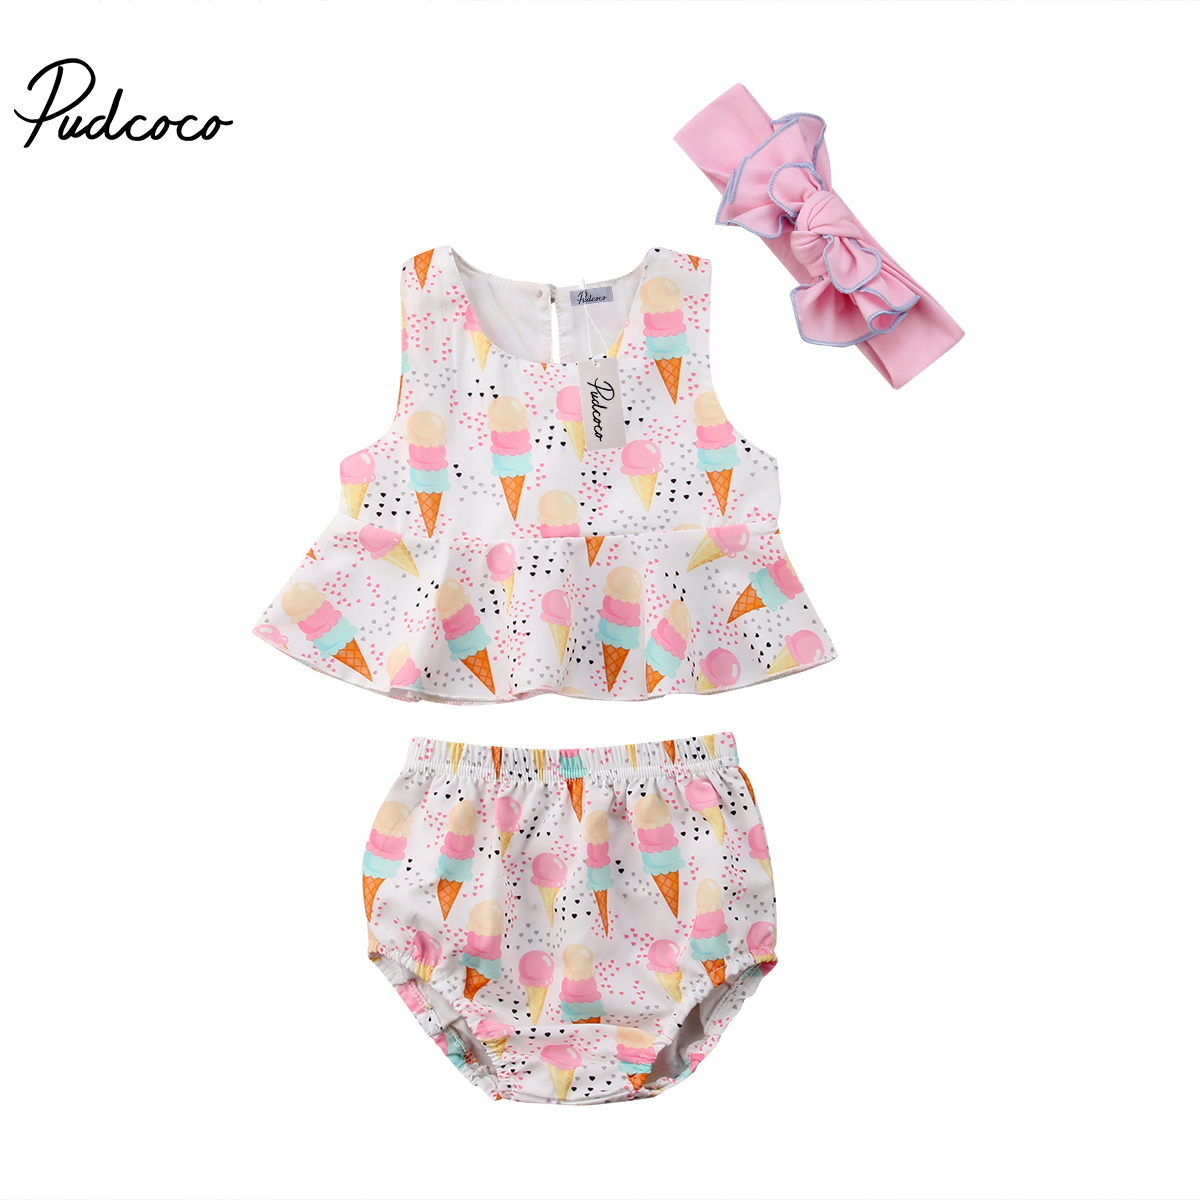 2018 Brand New Toddler Infant Newborn Baby Girls Ice Cream Vest Tops Shorts Briefs Headband 3pcs Outfit Clothes Summer Sunsuit